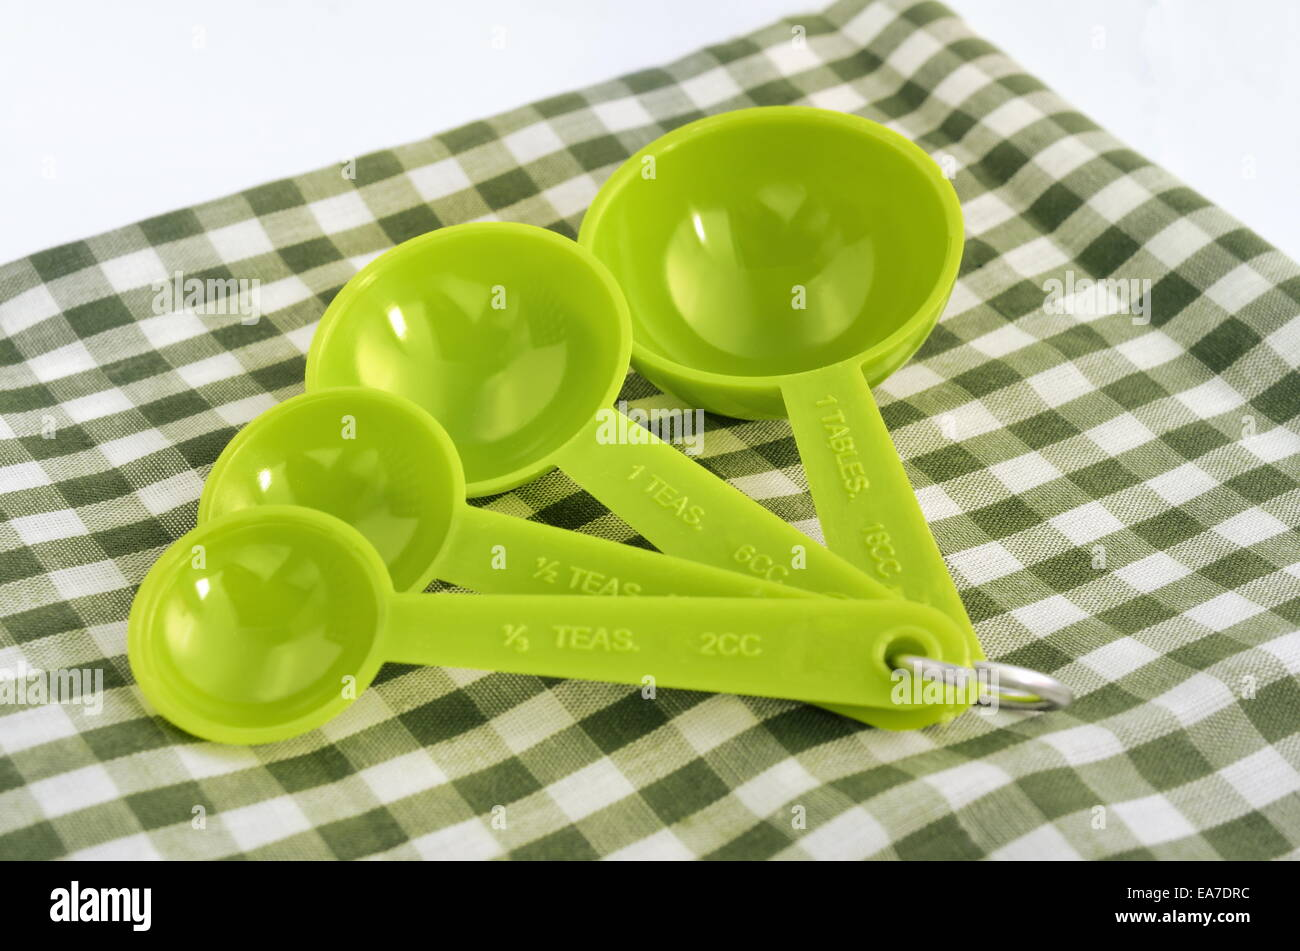 Measuring spoon set green color - Stock Image